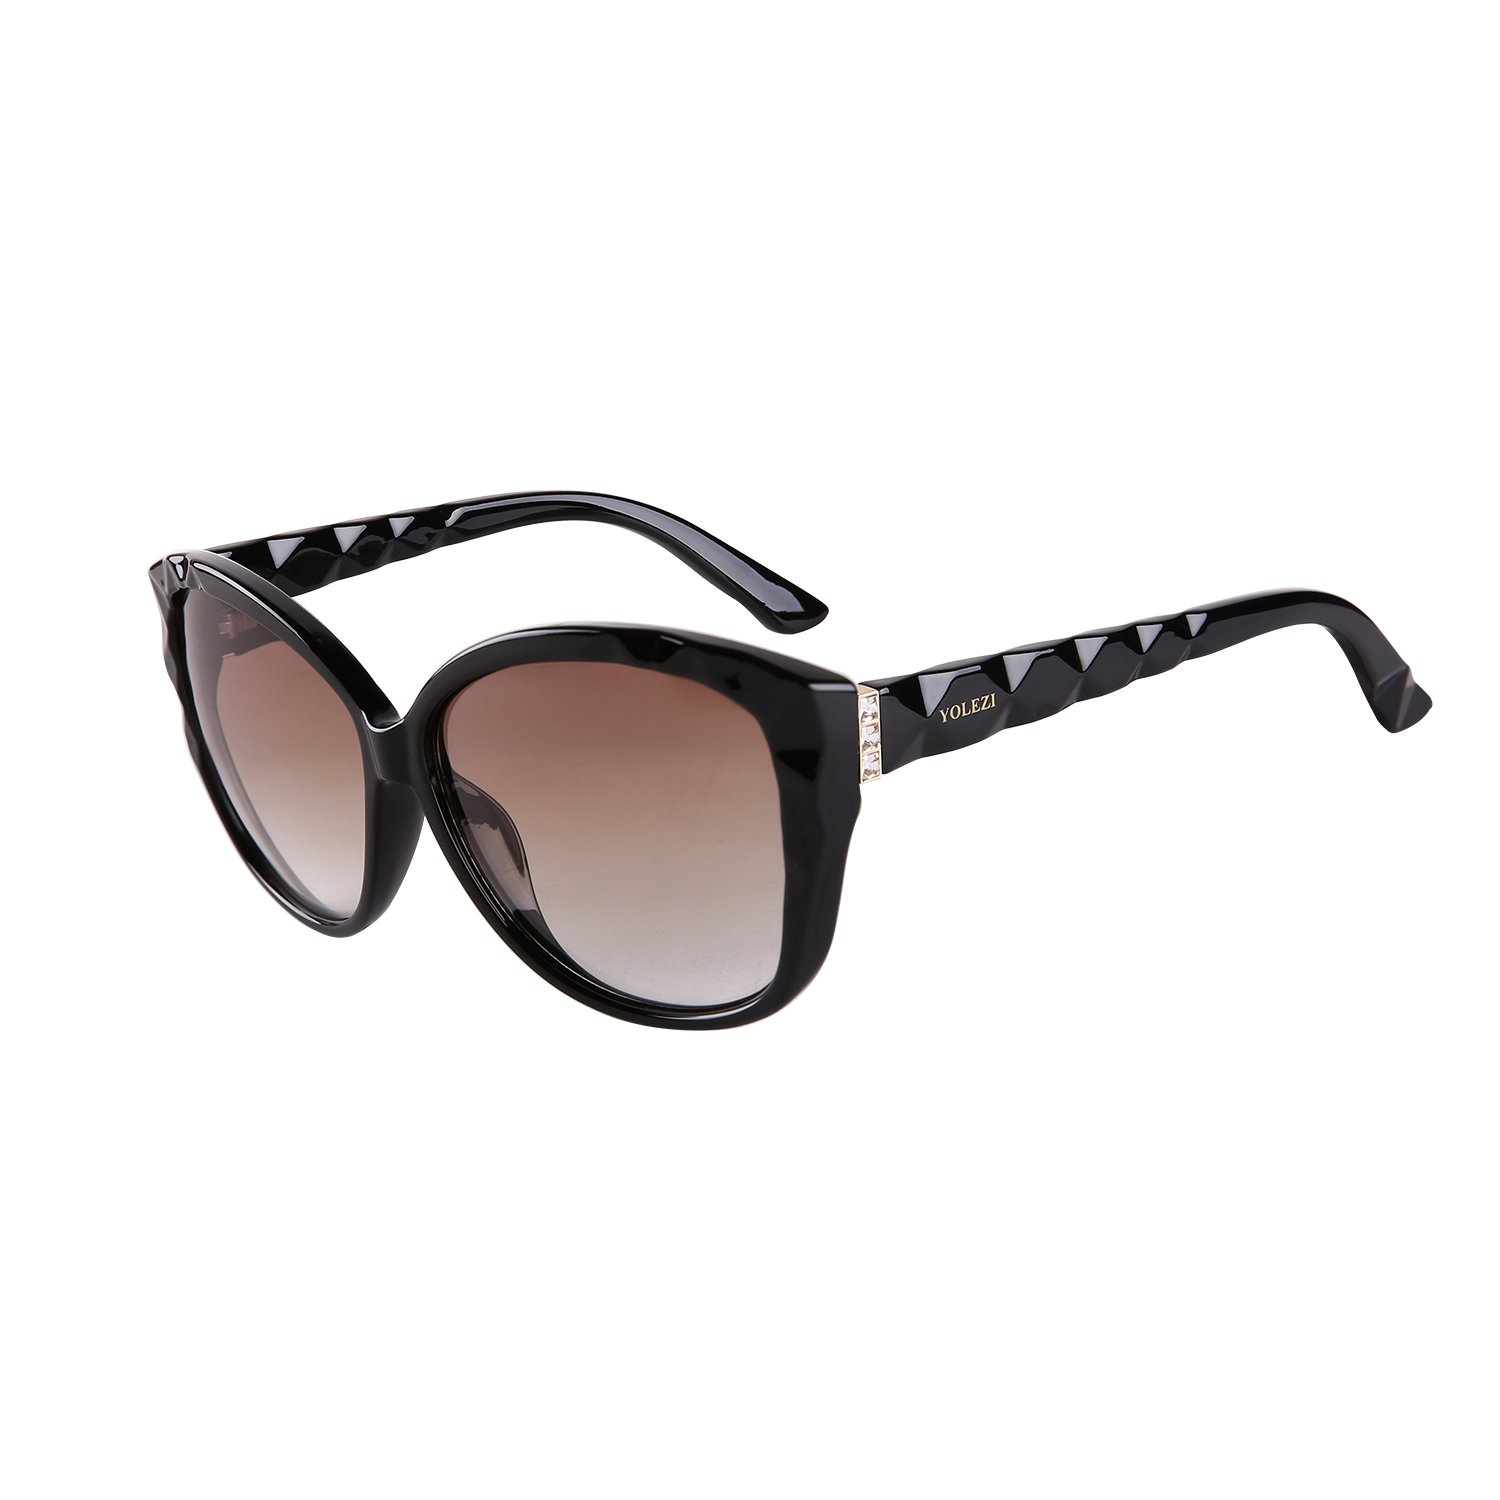 cdcd5eca4c8f  GREAT CLARITY OF VISION These fashion retro chic women sunglasses blocks  100% UVA and UVB protection from the ...